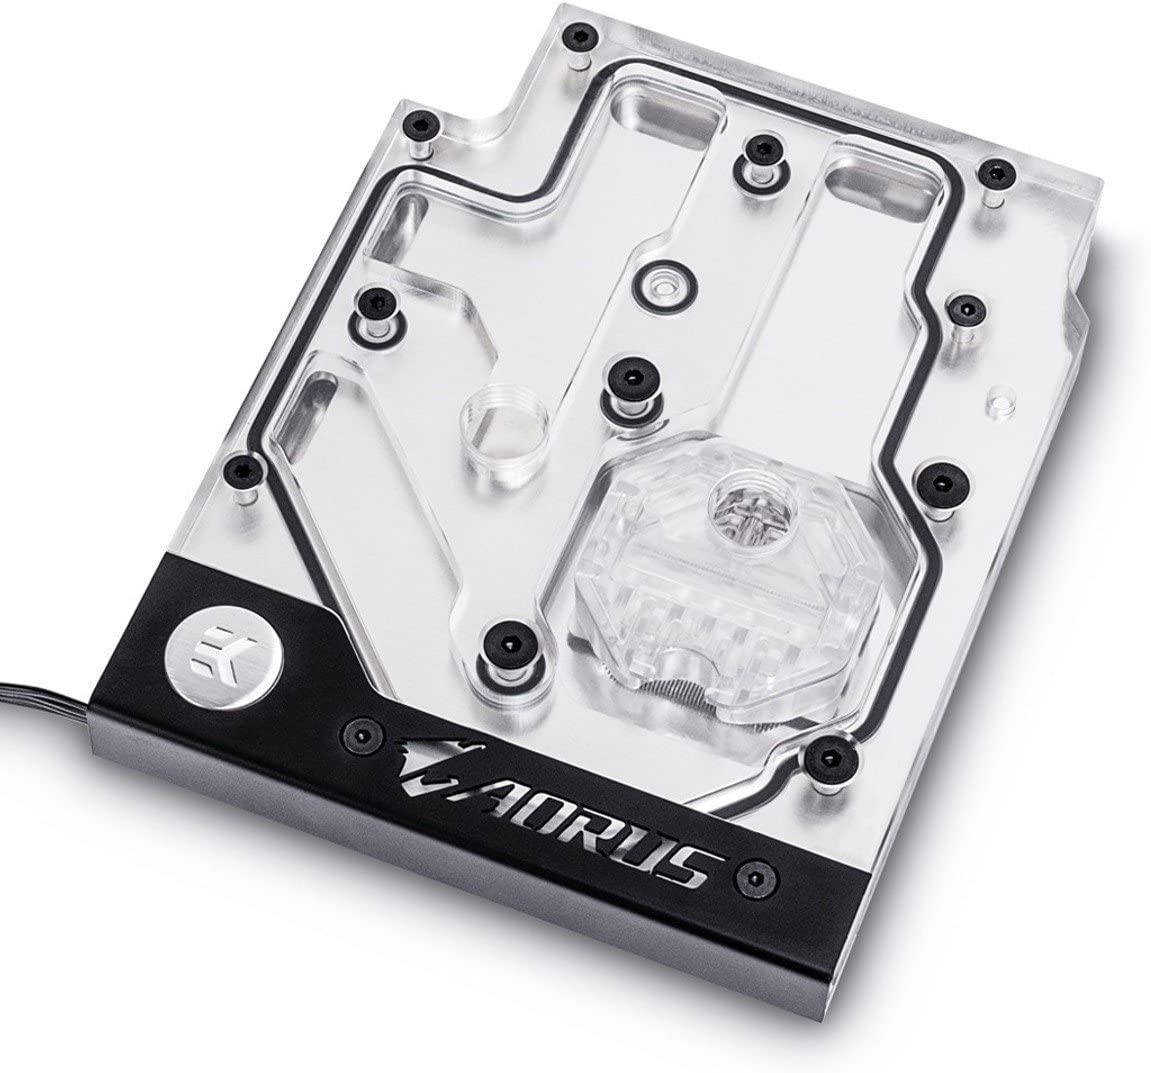 EKWB EK-FB GA X470 Gaming 5 RGB Monoblock, Nickel